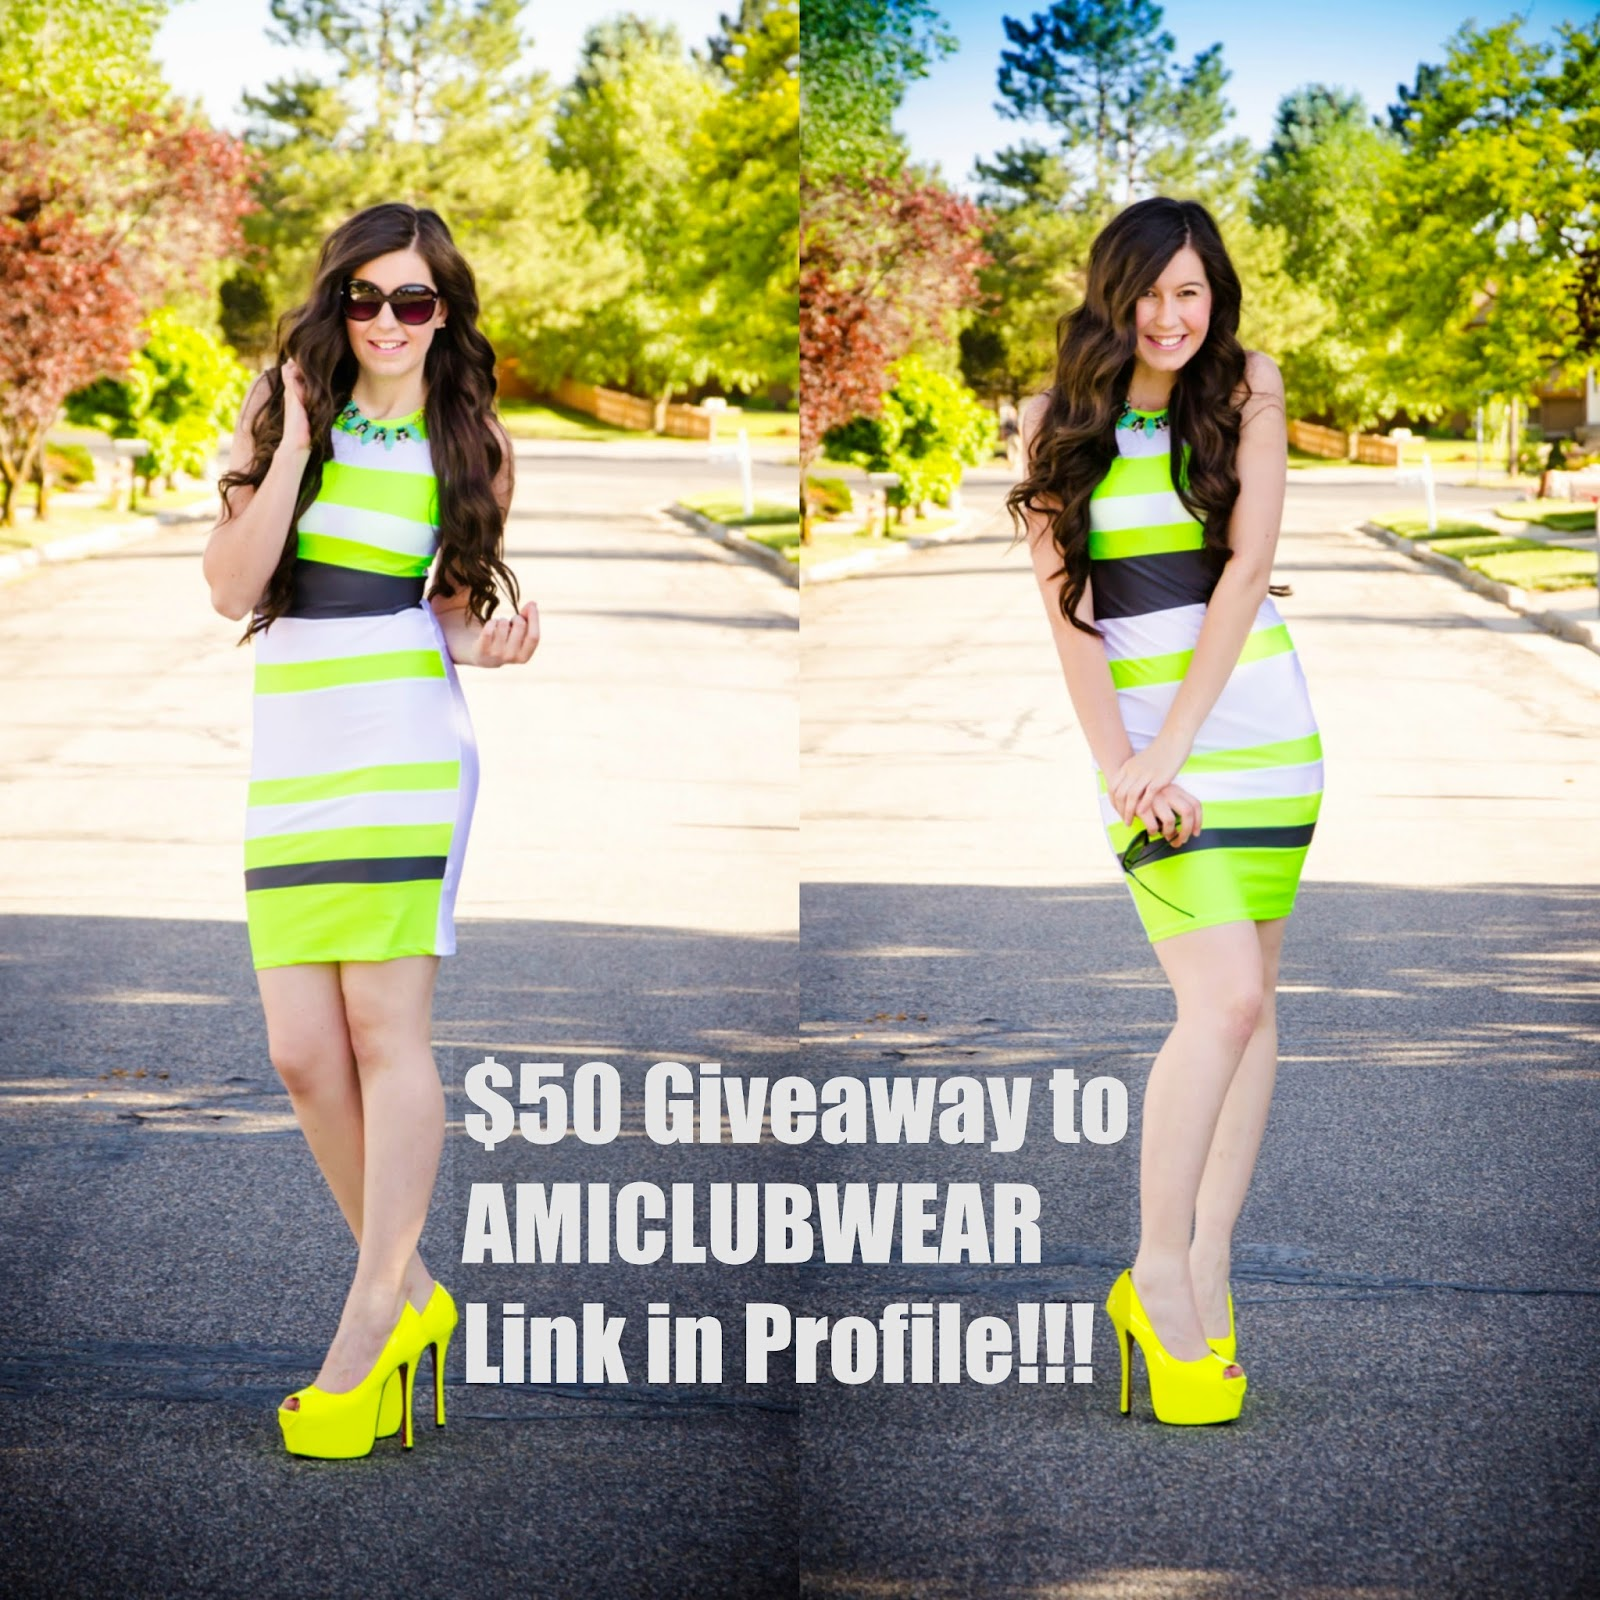 ami clubwear, amiclubwear, ami clubwear giveaway, giveaway, clothing giveaway, cute,